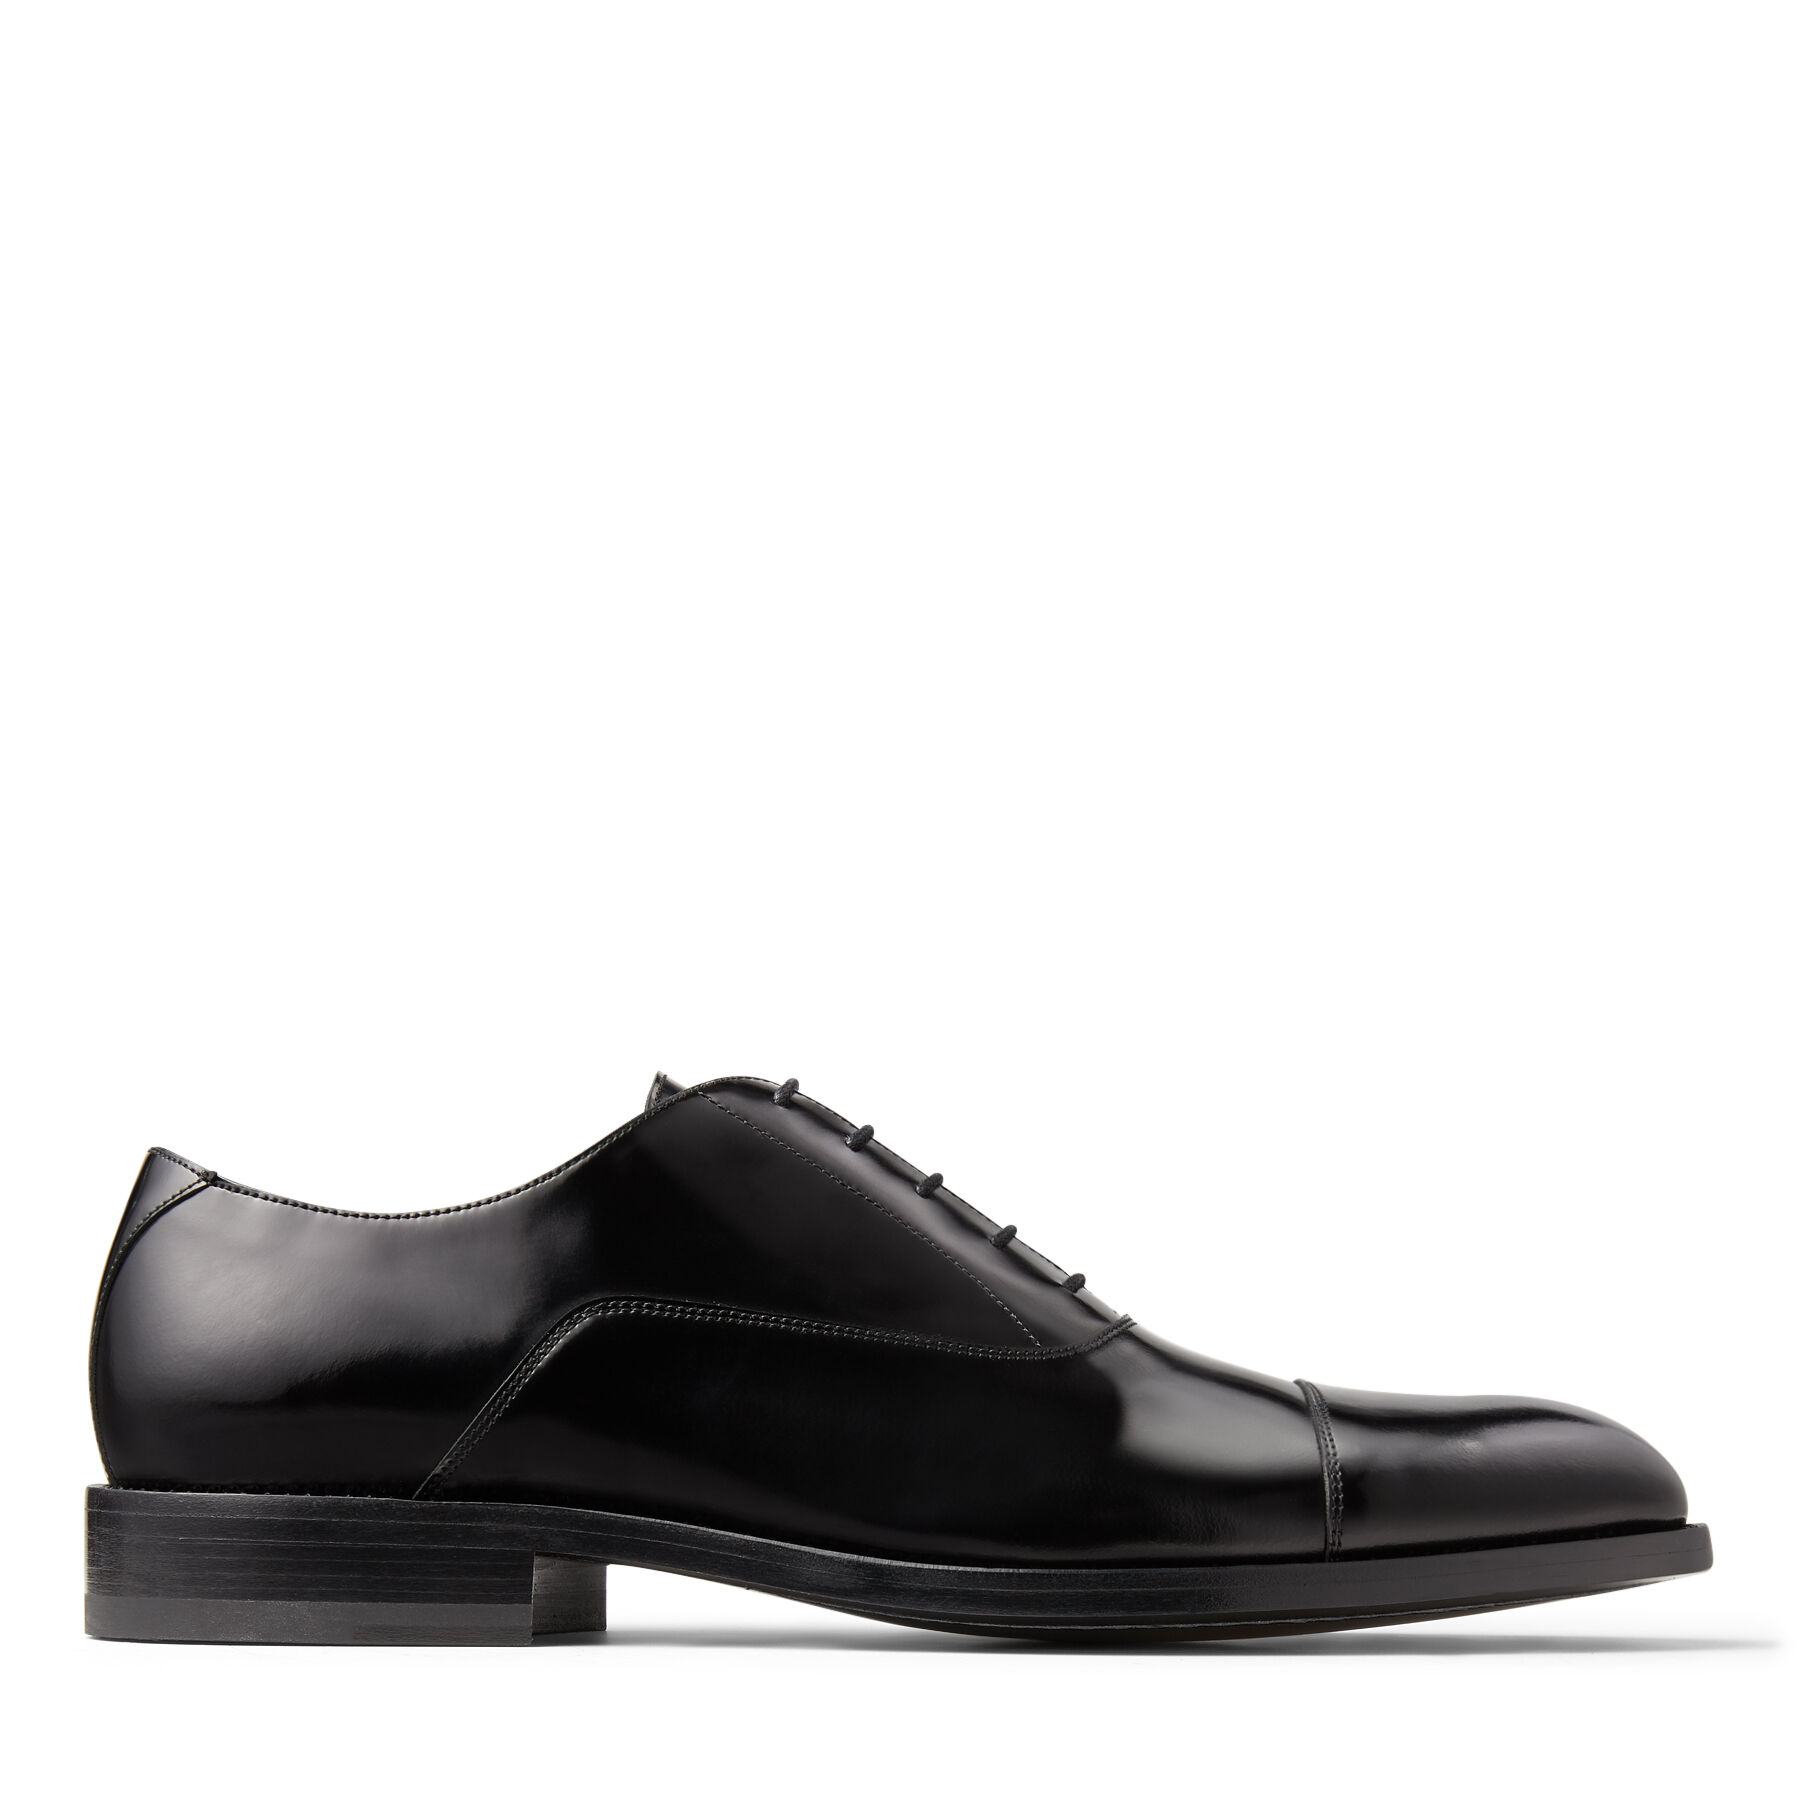 FINNION - Black Brush-Off Leather Oxford Shoes with Crystals